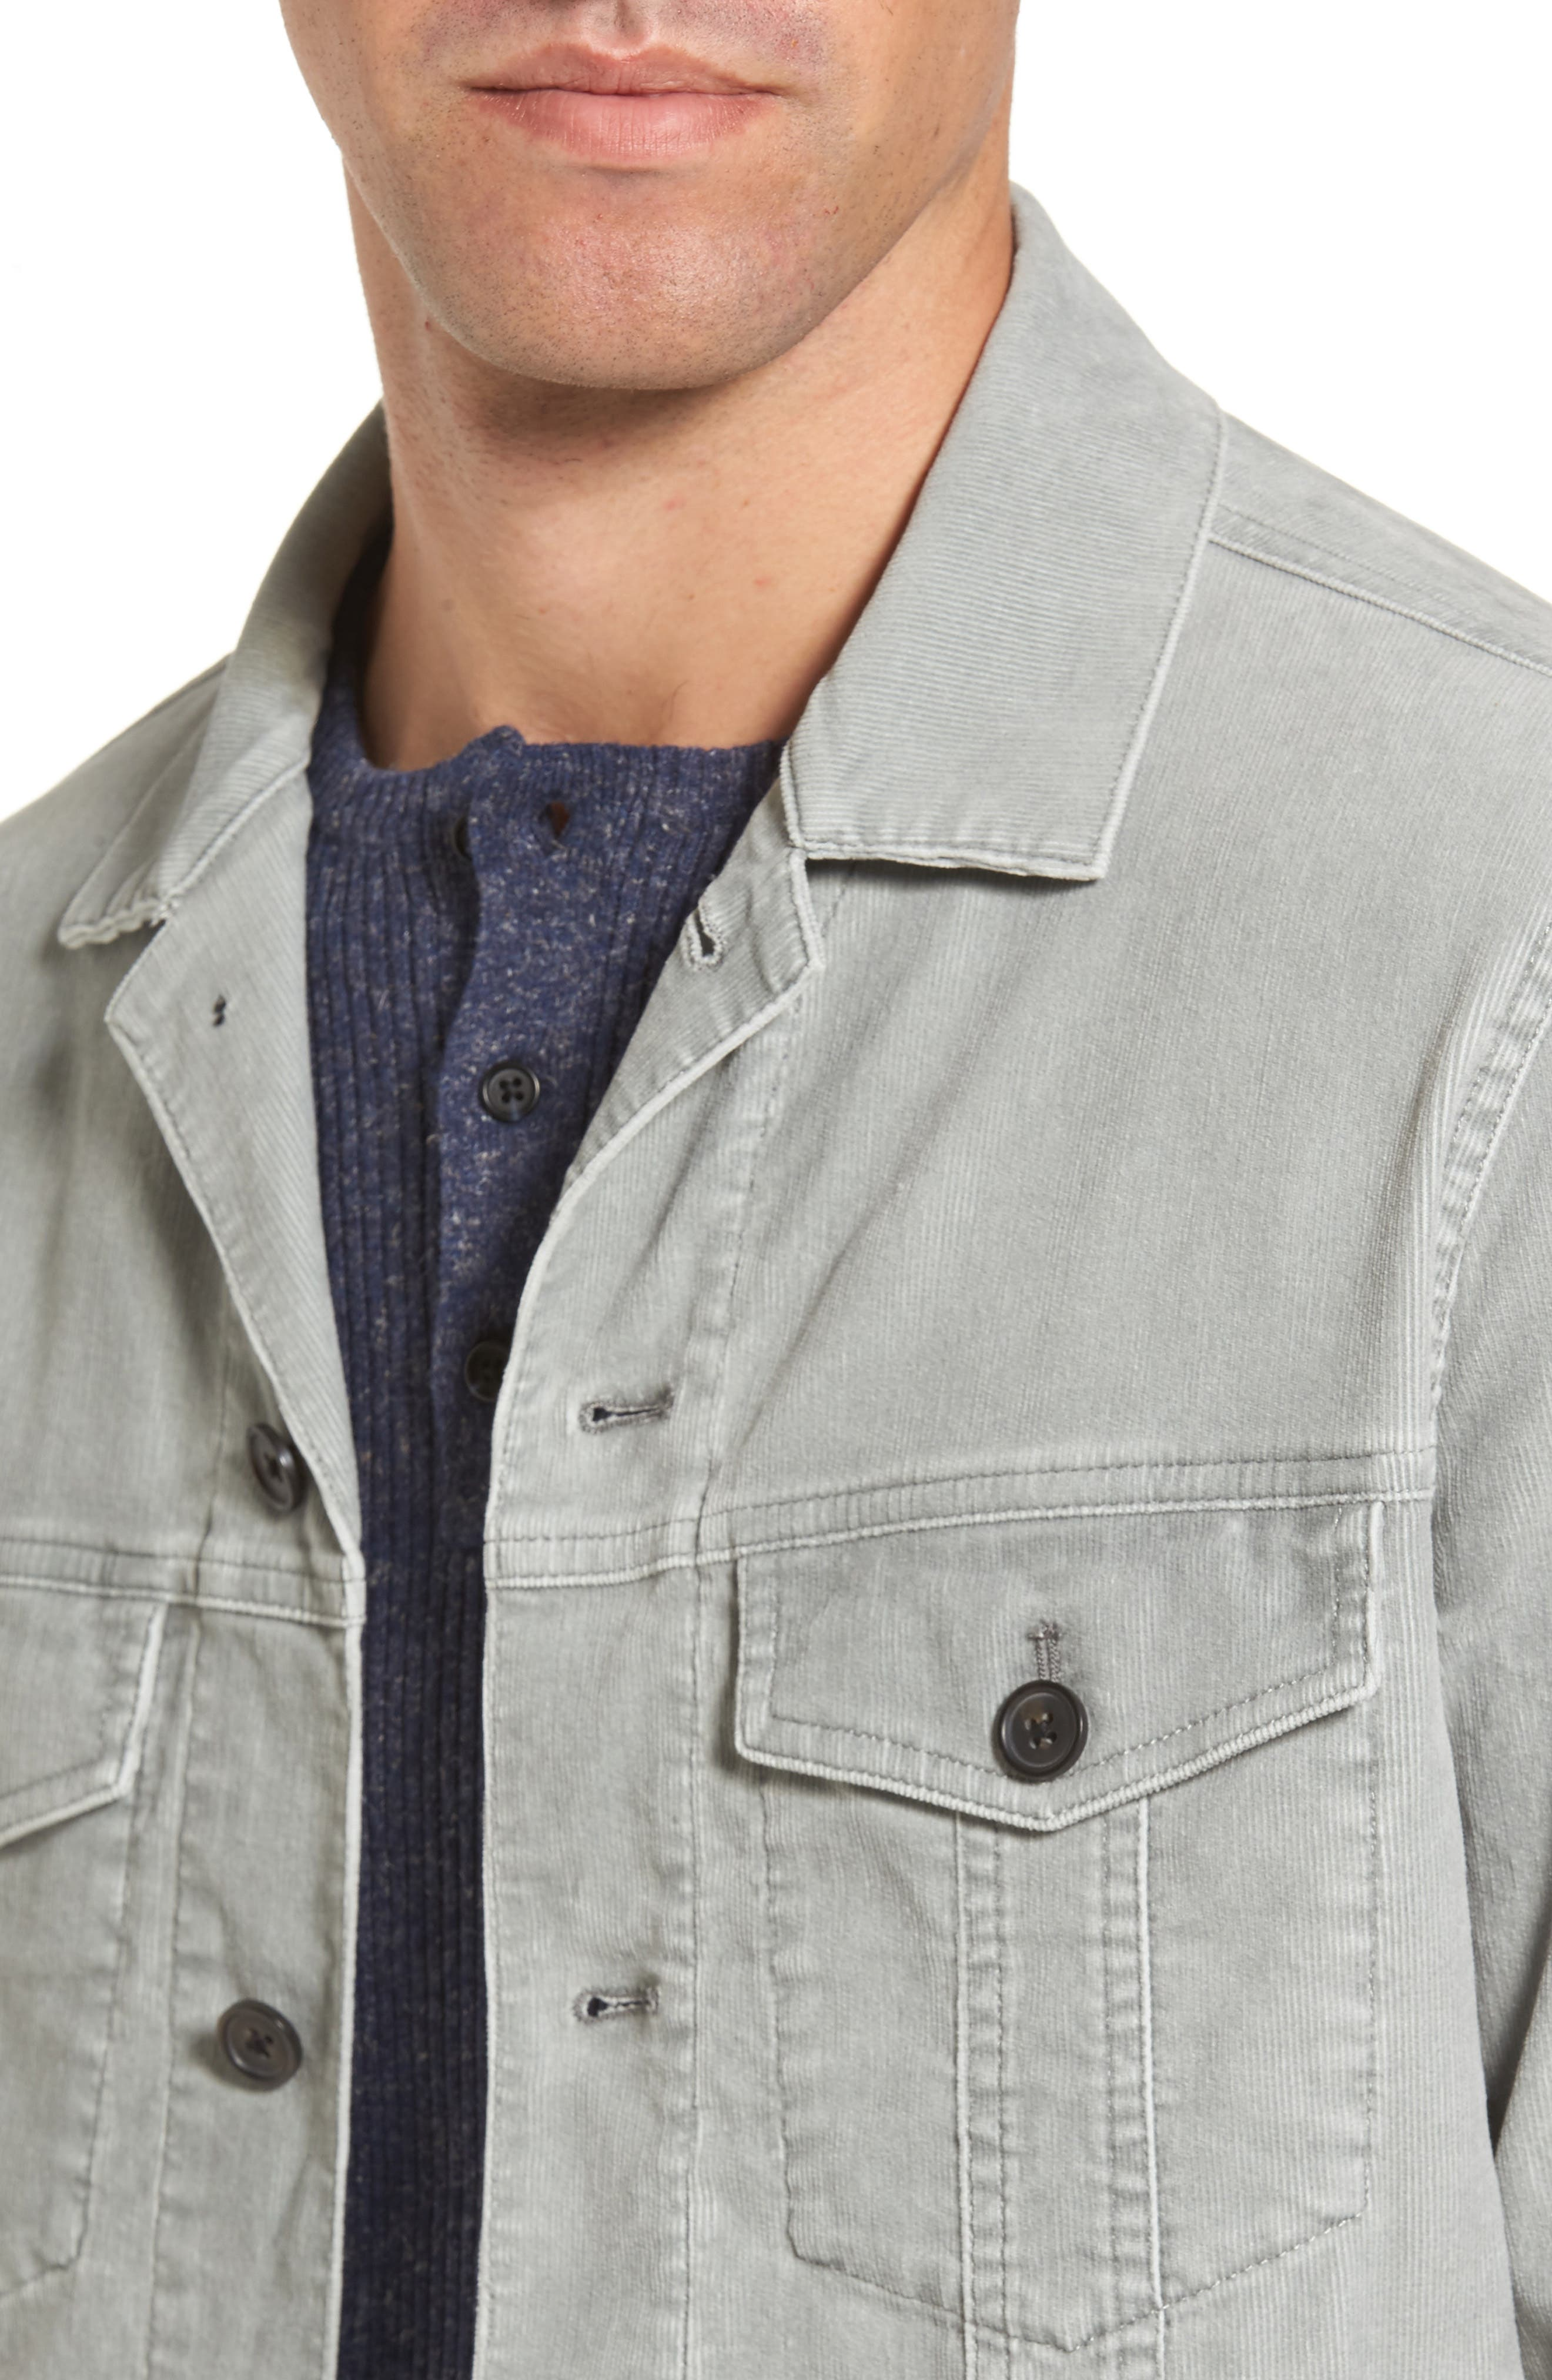 Pigment Dyed Stretch Corduroy Jacket,                             Alternate thumbnail 4, color,                             340